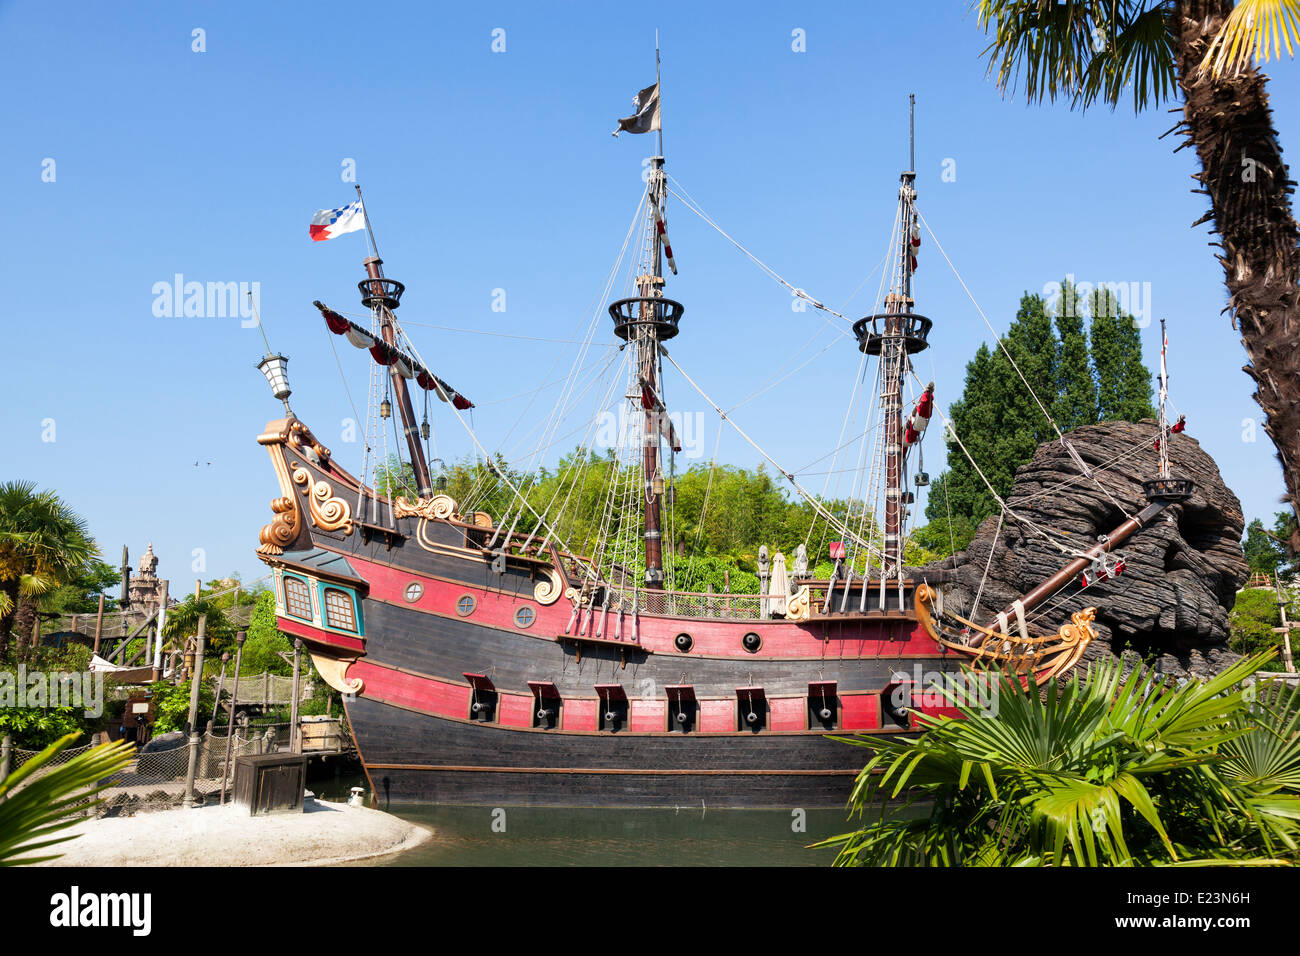 piratenschiff in disneyland paris im bereich fluch der karibik stockfoto bild 70153289 alamy. Black Bedroom Furniture Sets. Home Design Ideas